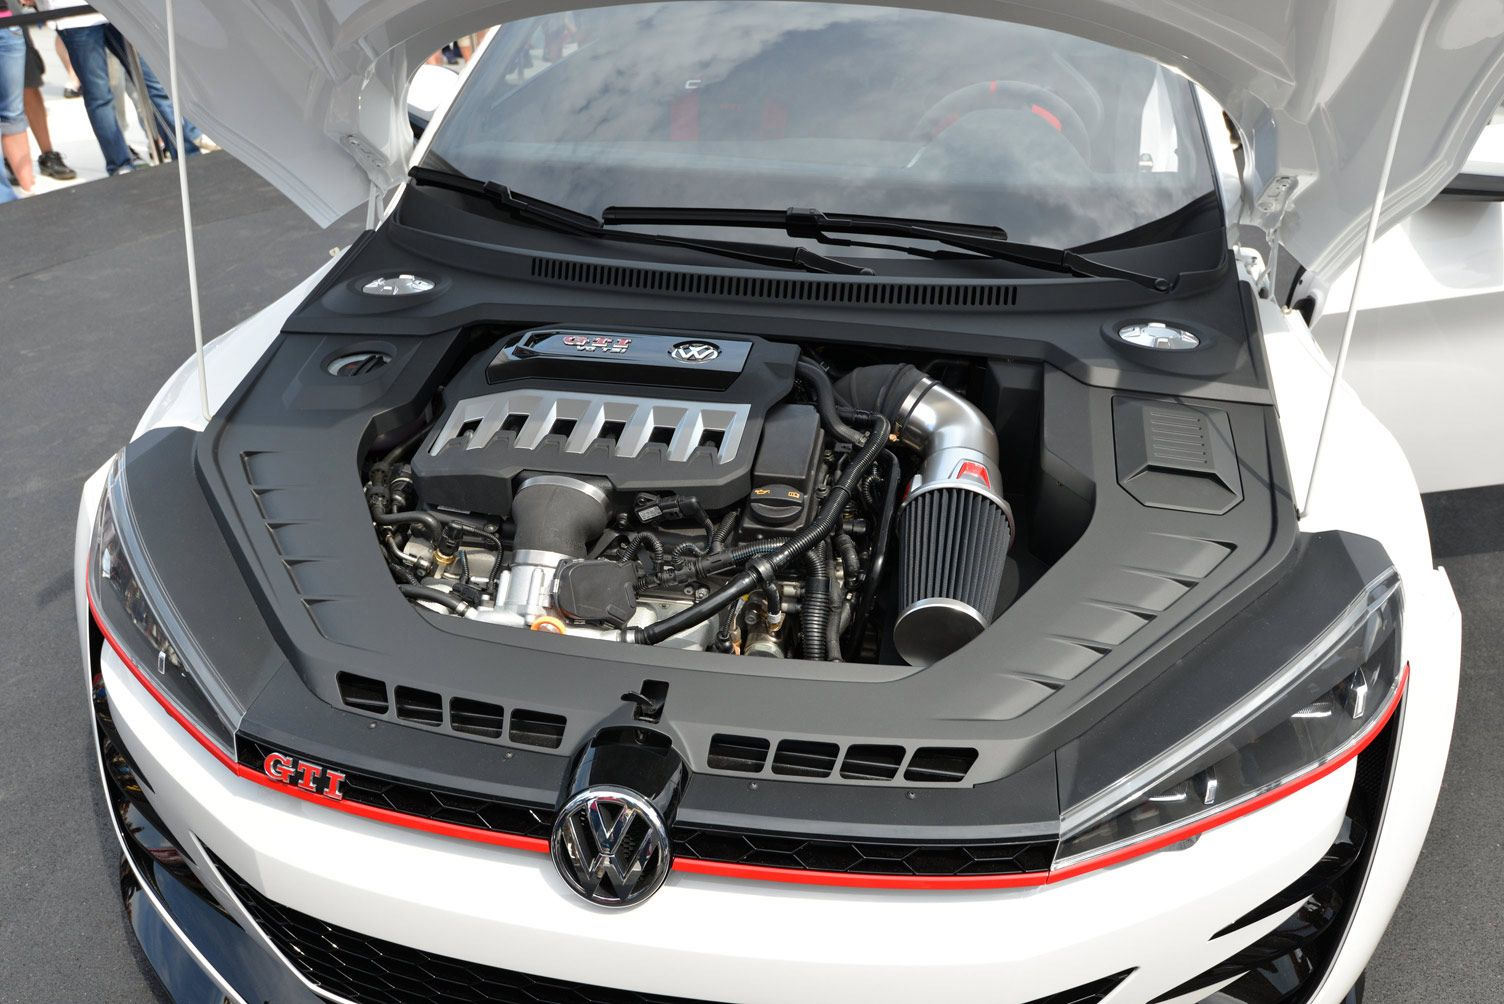 gti debut in w rthersee volkswagen showed us a new vr6 this 3 0l 24v six cylinder could. Black Bedroom Furniture Sets. Home Design Ideas